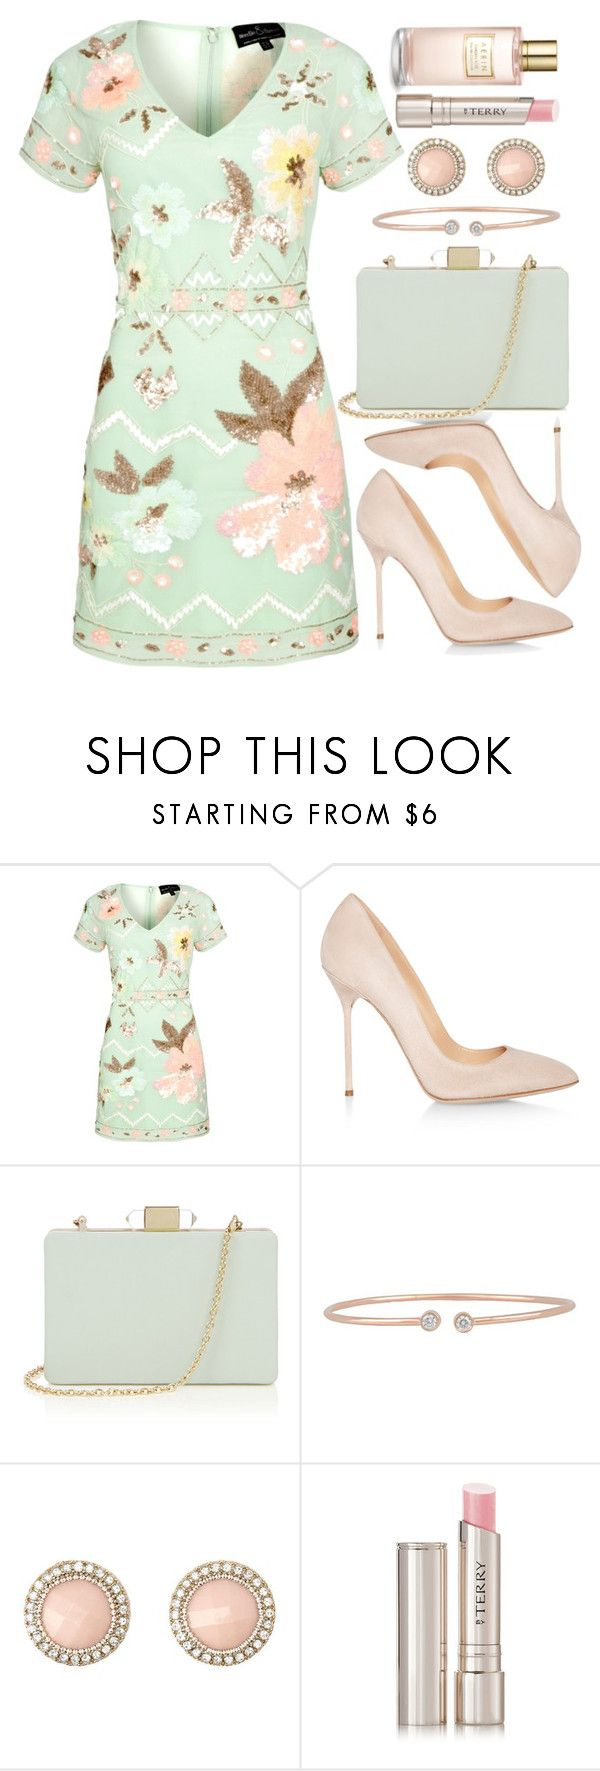 """""""Untitled #4367"""" by natalyasidunova ❤ liked on Polyvore featuring Needle & Thread, Sergio Rossi, Oasis, Forevermark, Charlotte Russe, By Terry and Estée Lauder"""